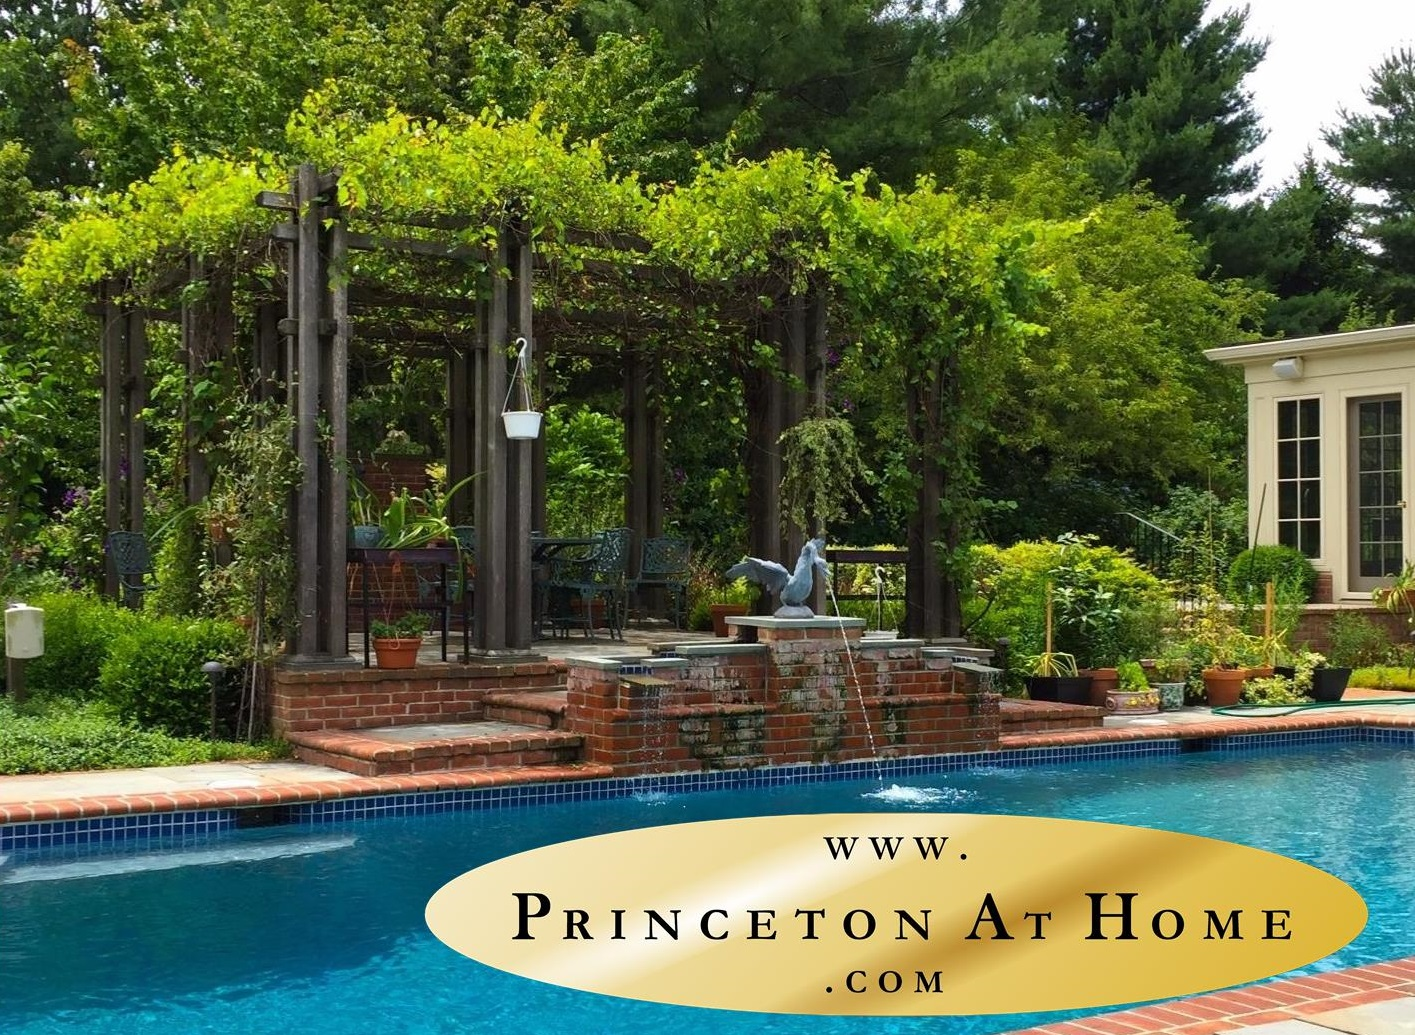 Princeton Pools | Princeton Real Estate for Sale | Steve Walny Realtor